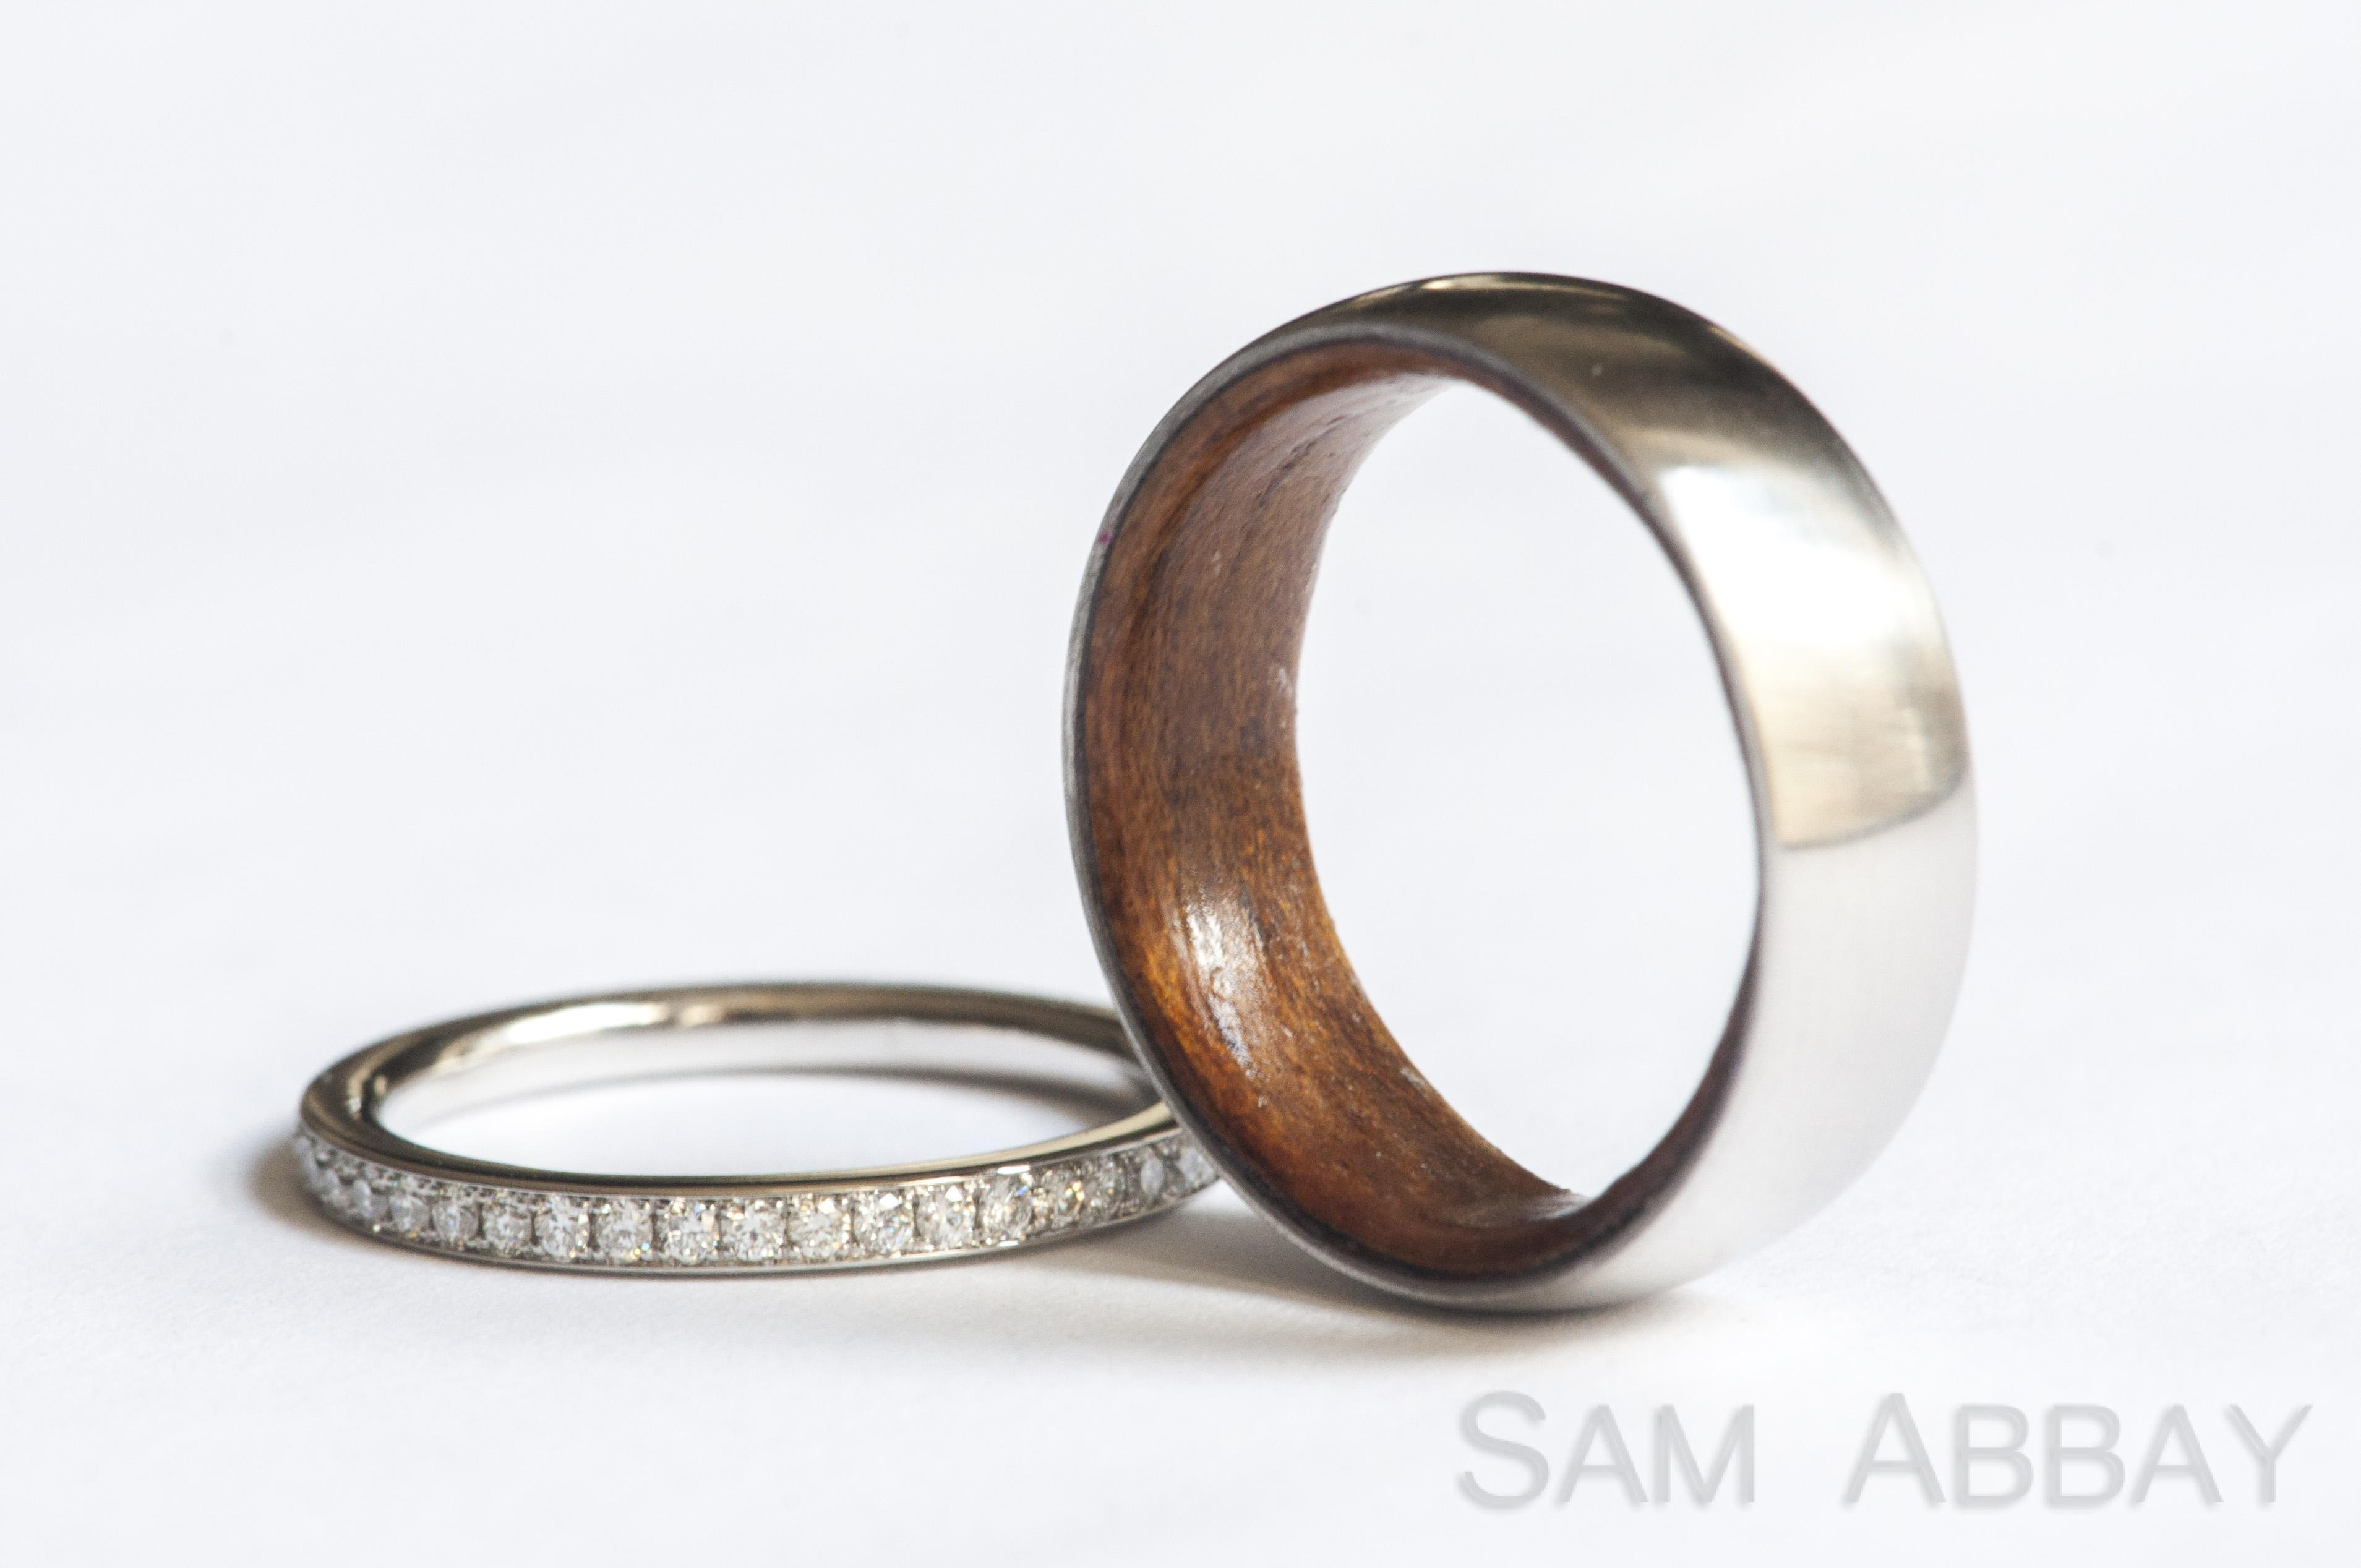 rings with liners rings wedding This unusual customer wanted a wood wedding ring Since wood rings are usually not durable enough to last as wedding rings we created a platinum ring with